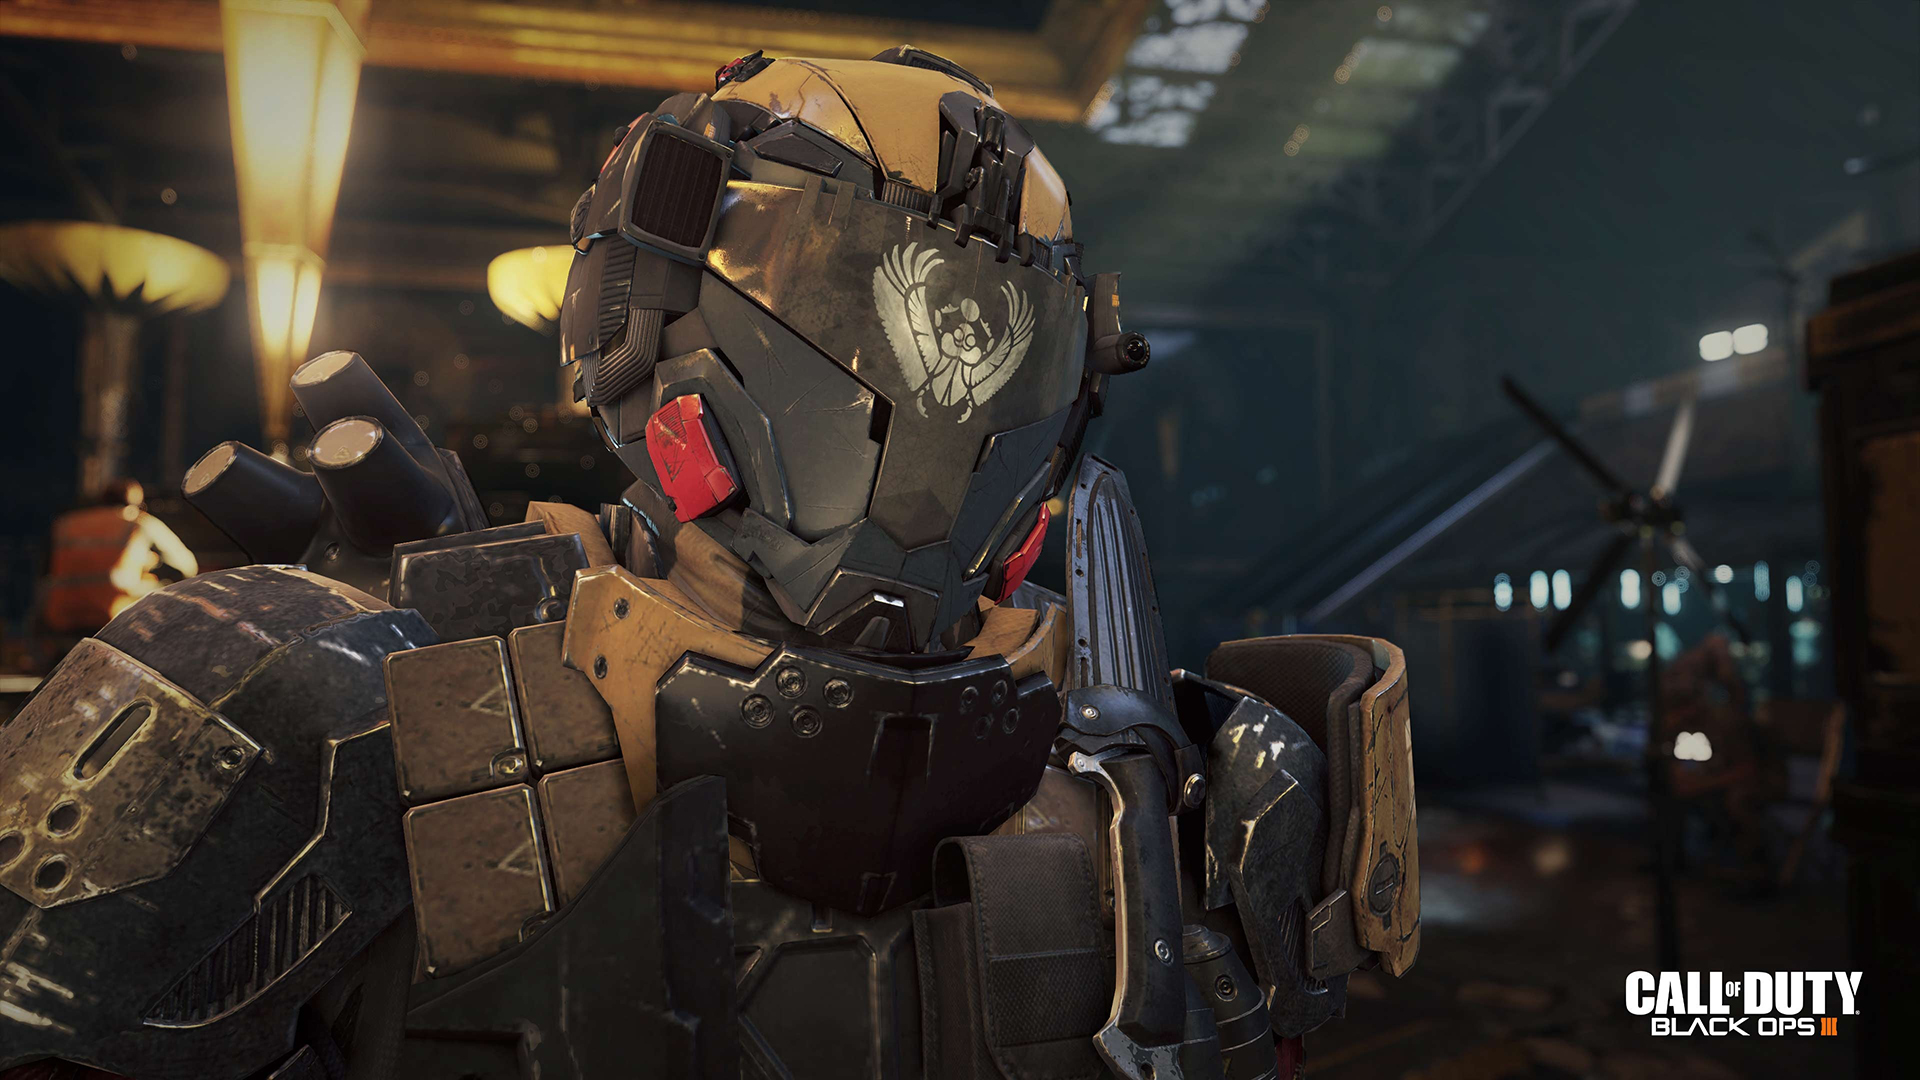 Call Of Duty: Black Ops 3 Screenshots Introduce Super-Soldiers And Robots  #32756